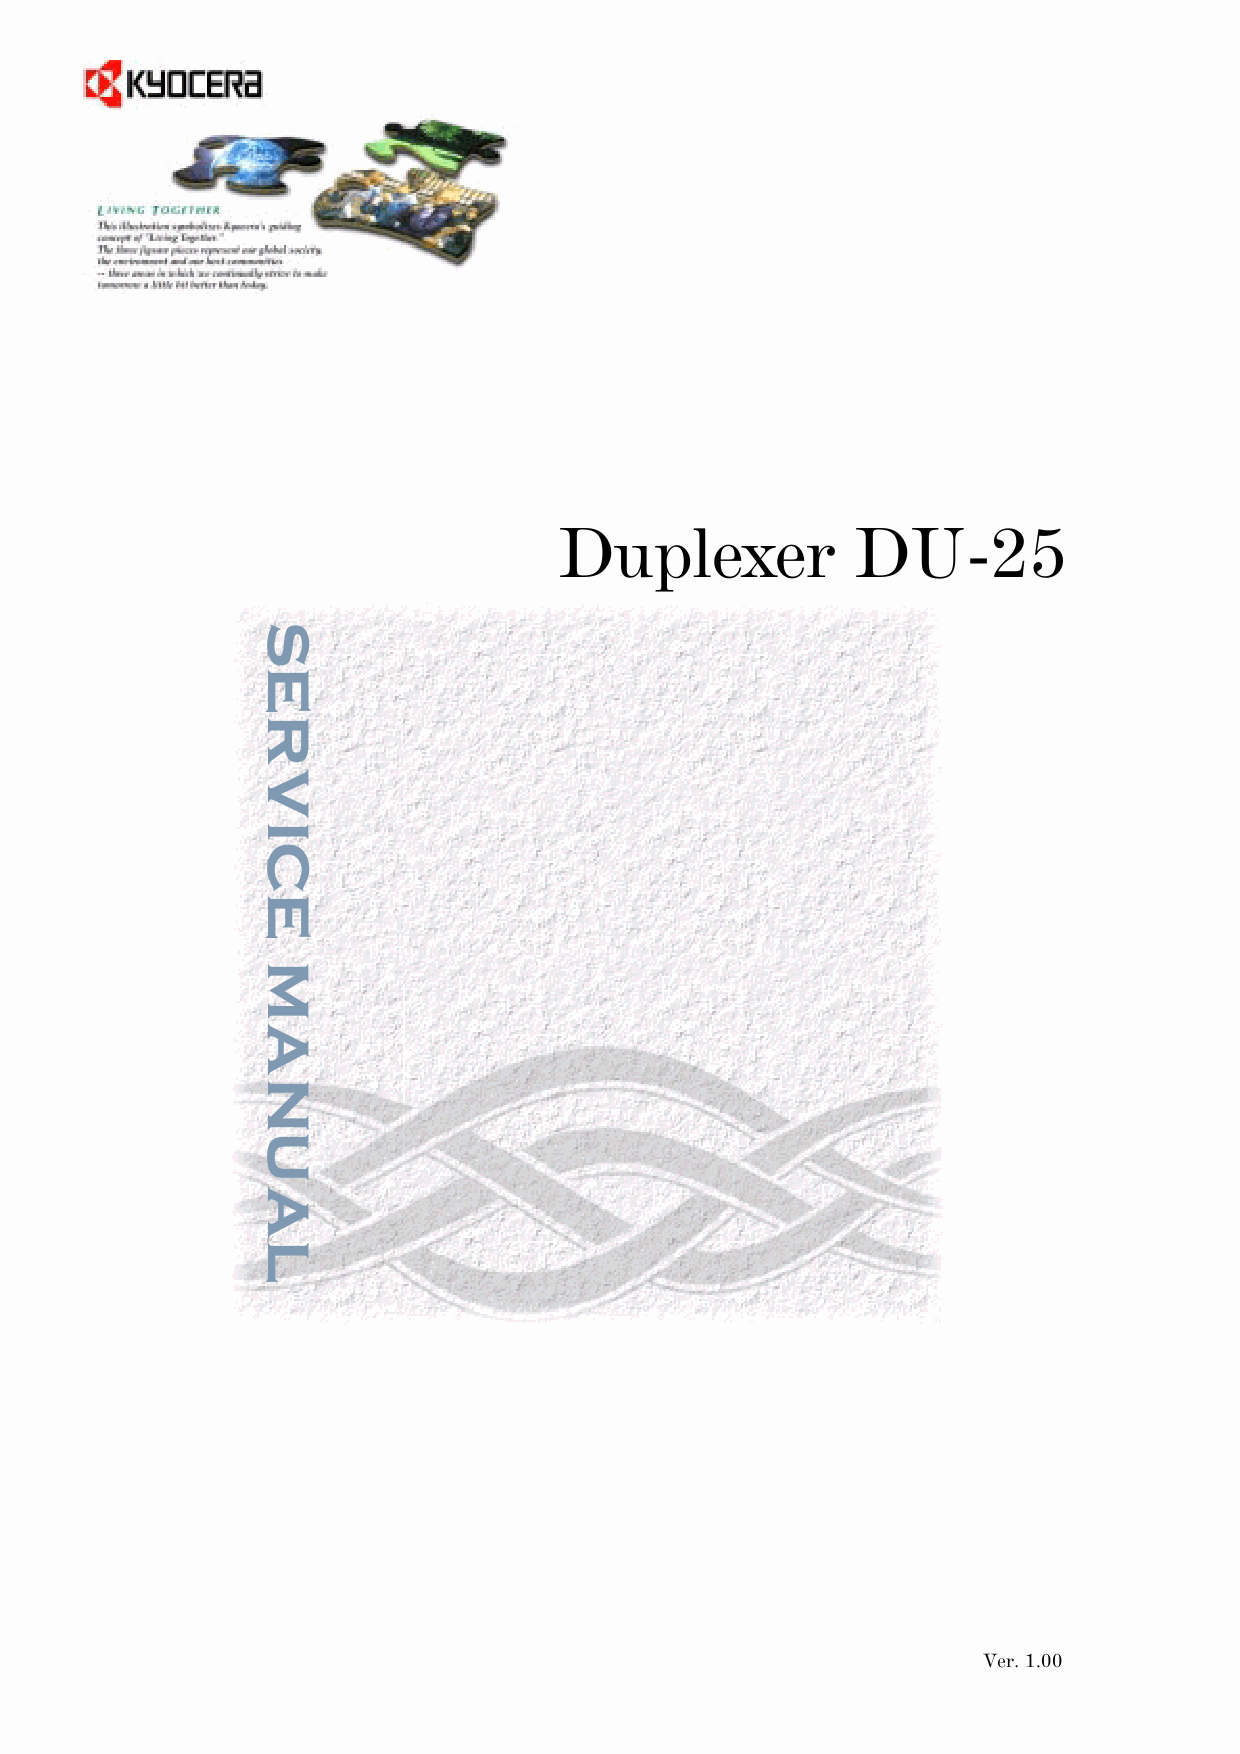 KYOCERA Options Duplexer-DU-25 Parts and Service Manual-1